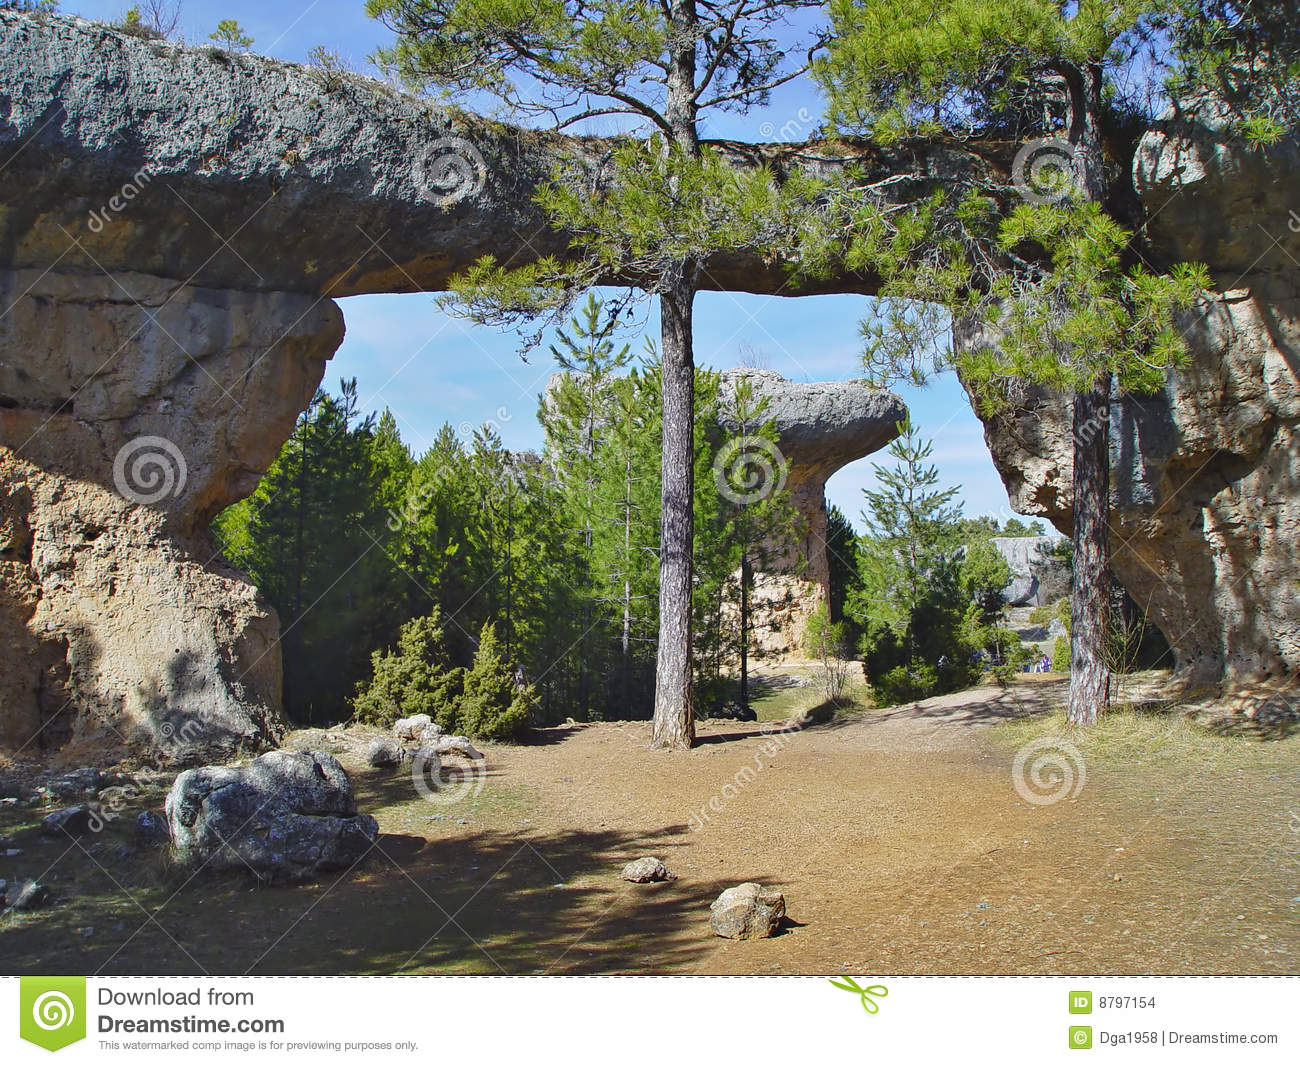 Download Enchanted City Of Cuenca, Spain Stock Photo - Image of archery, landscape: 8797154